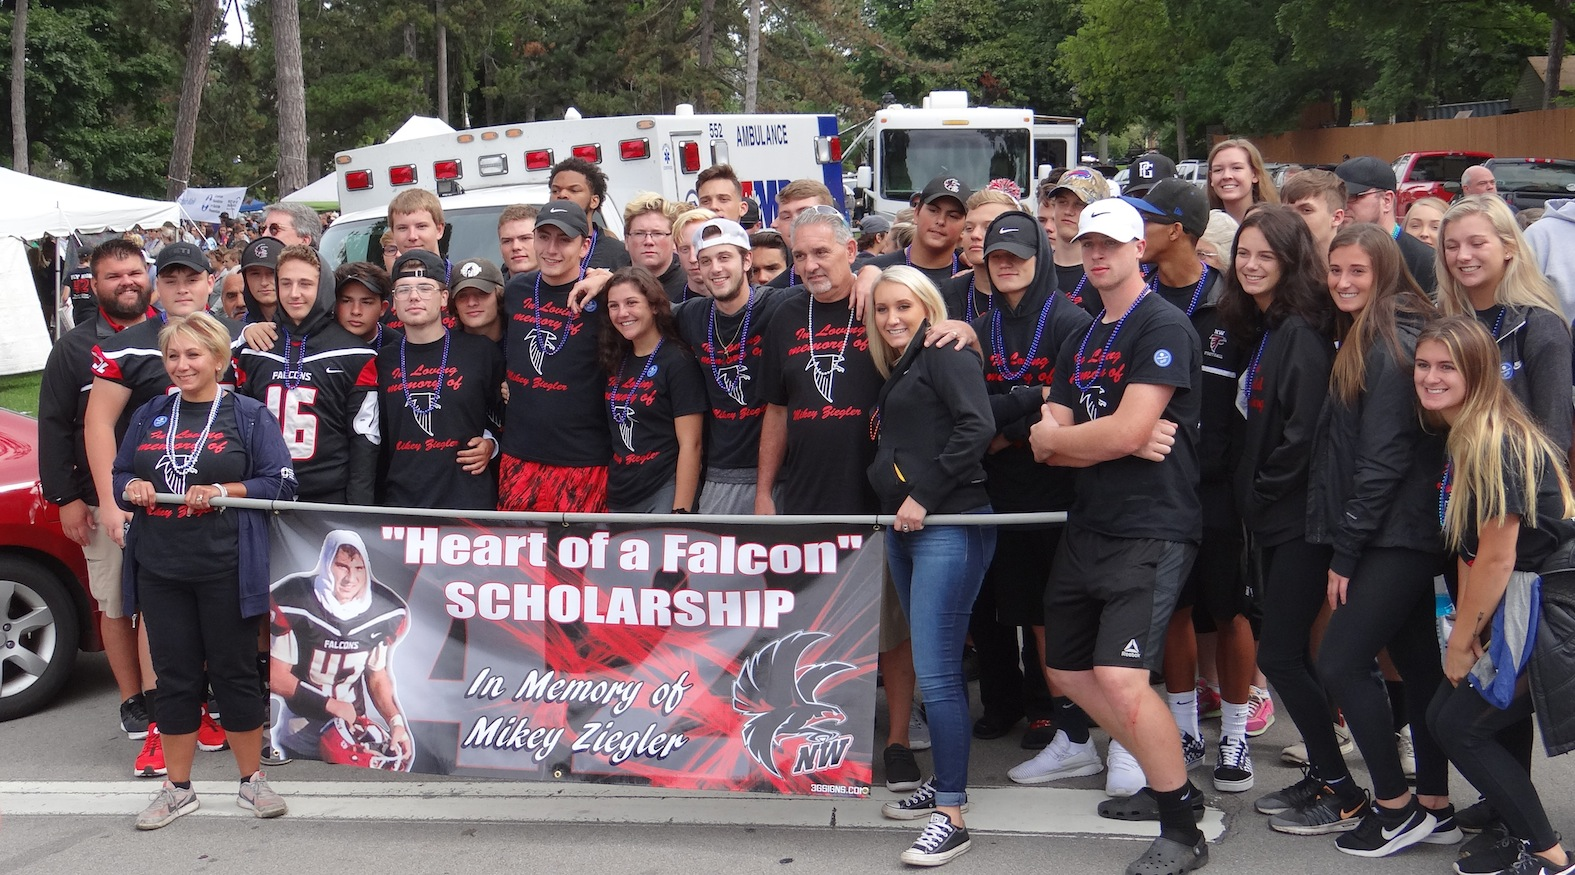 Pictured are the walkers who showed up to honor Michael Ziegler and the `Heart of a Falcon` Scholarship. (Photo by Lorna Tilley-Peltier)